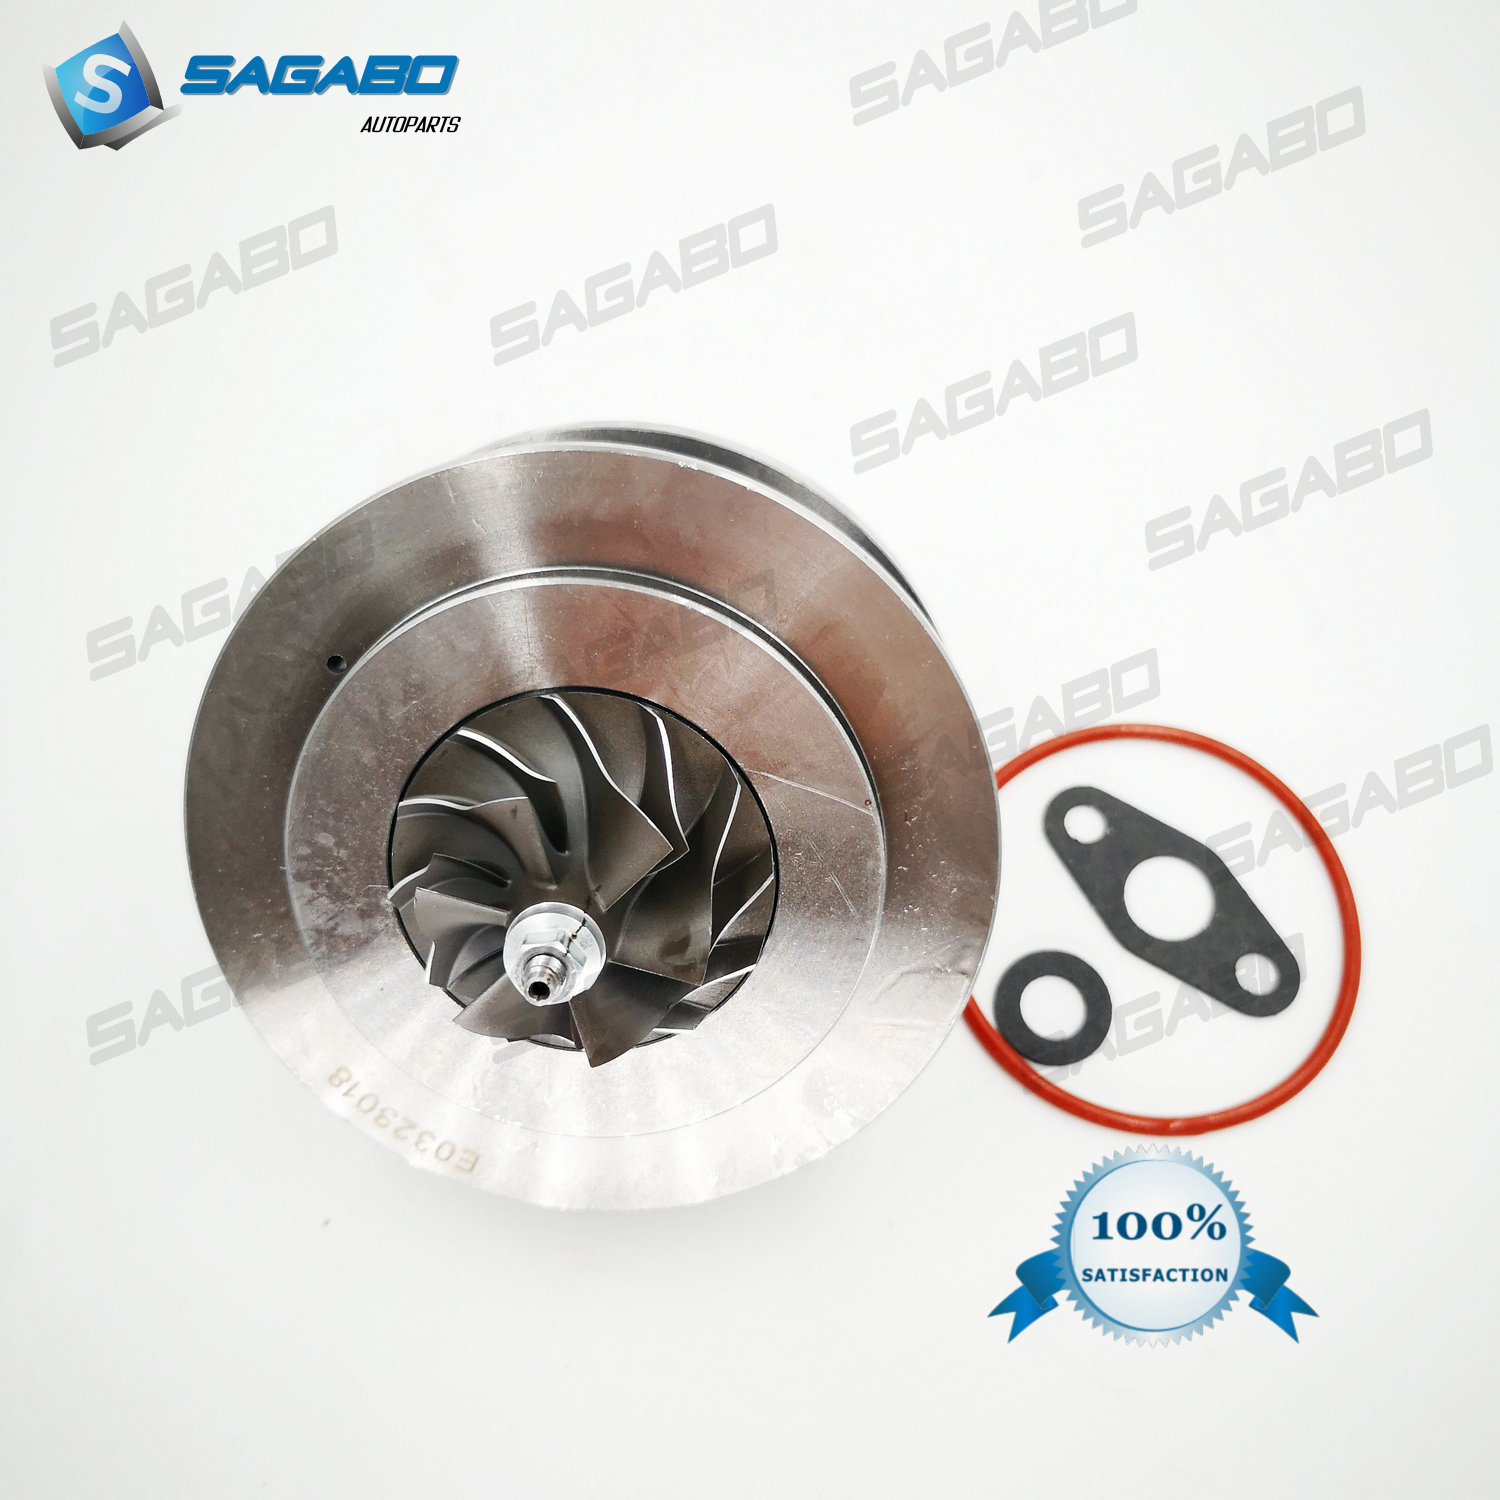 Turbocharger for Hyundai Santa Fe Grandeur 2 2 CRDI D4EB 155HP 2006 2010 Turbo chra cartridge